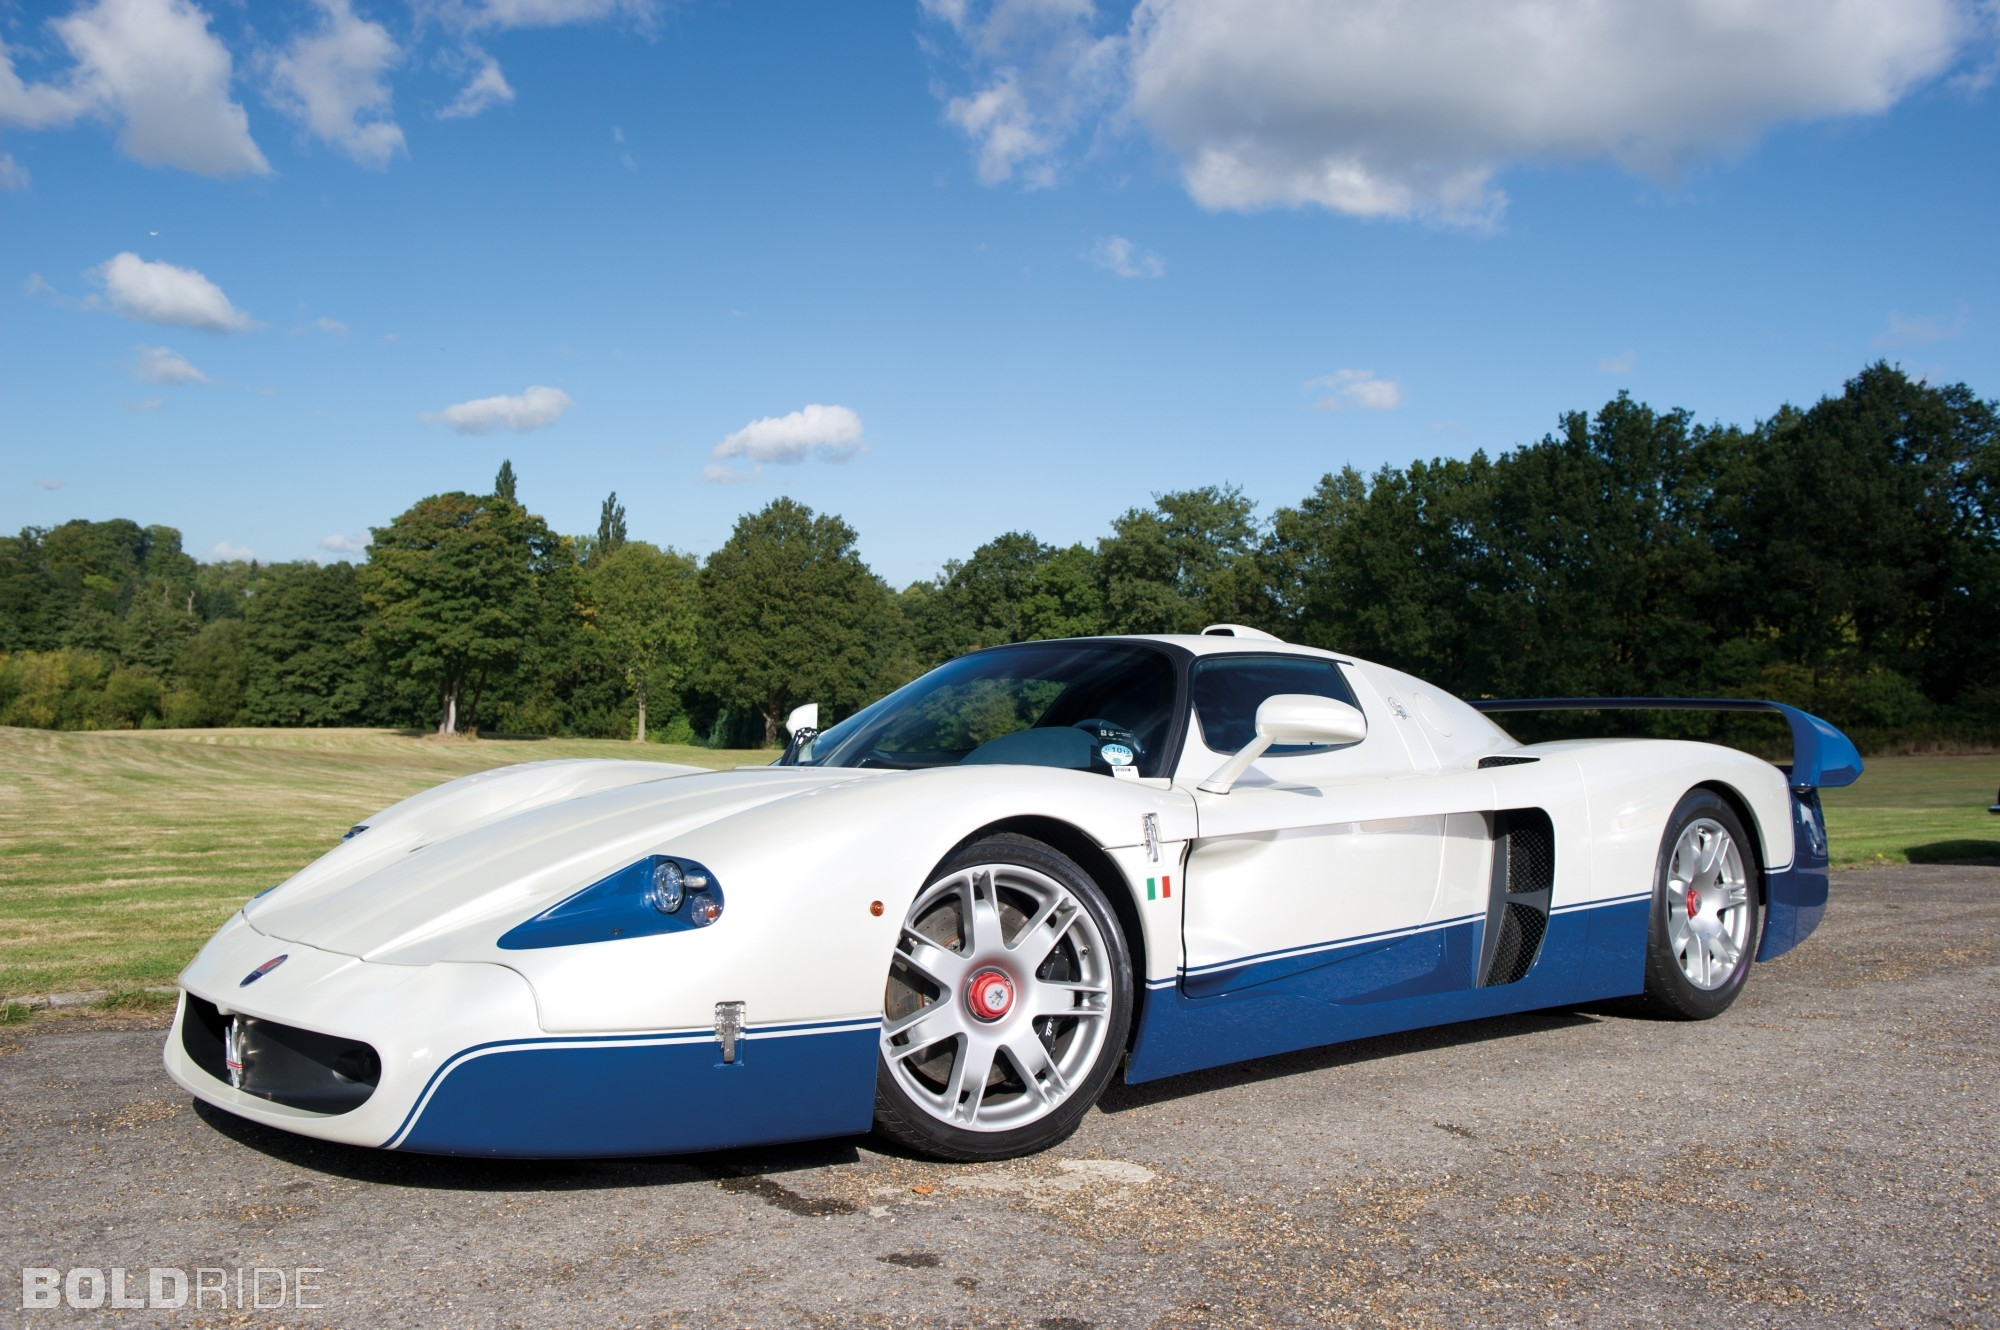 2005 maserati mc12 supercar supercars wallpaper 2000x1330 88483 wallpaperup. Black Bedroom Furniture Sets. Home Design Ideas